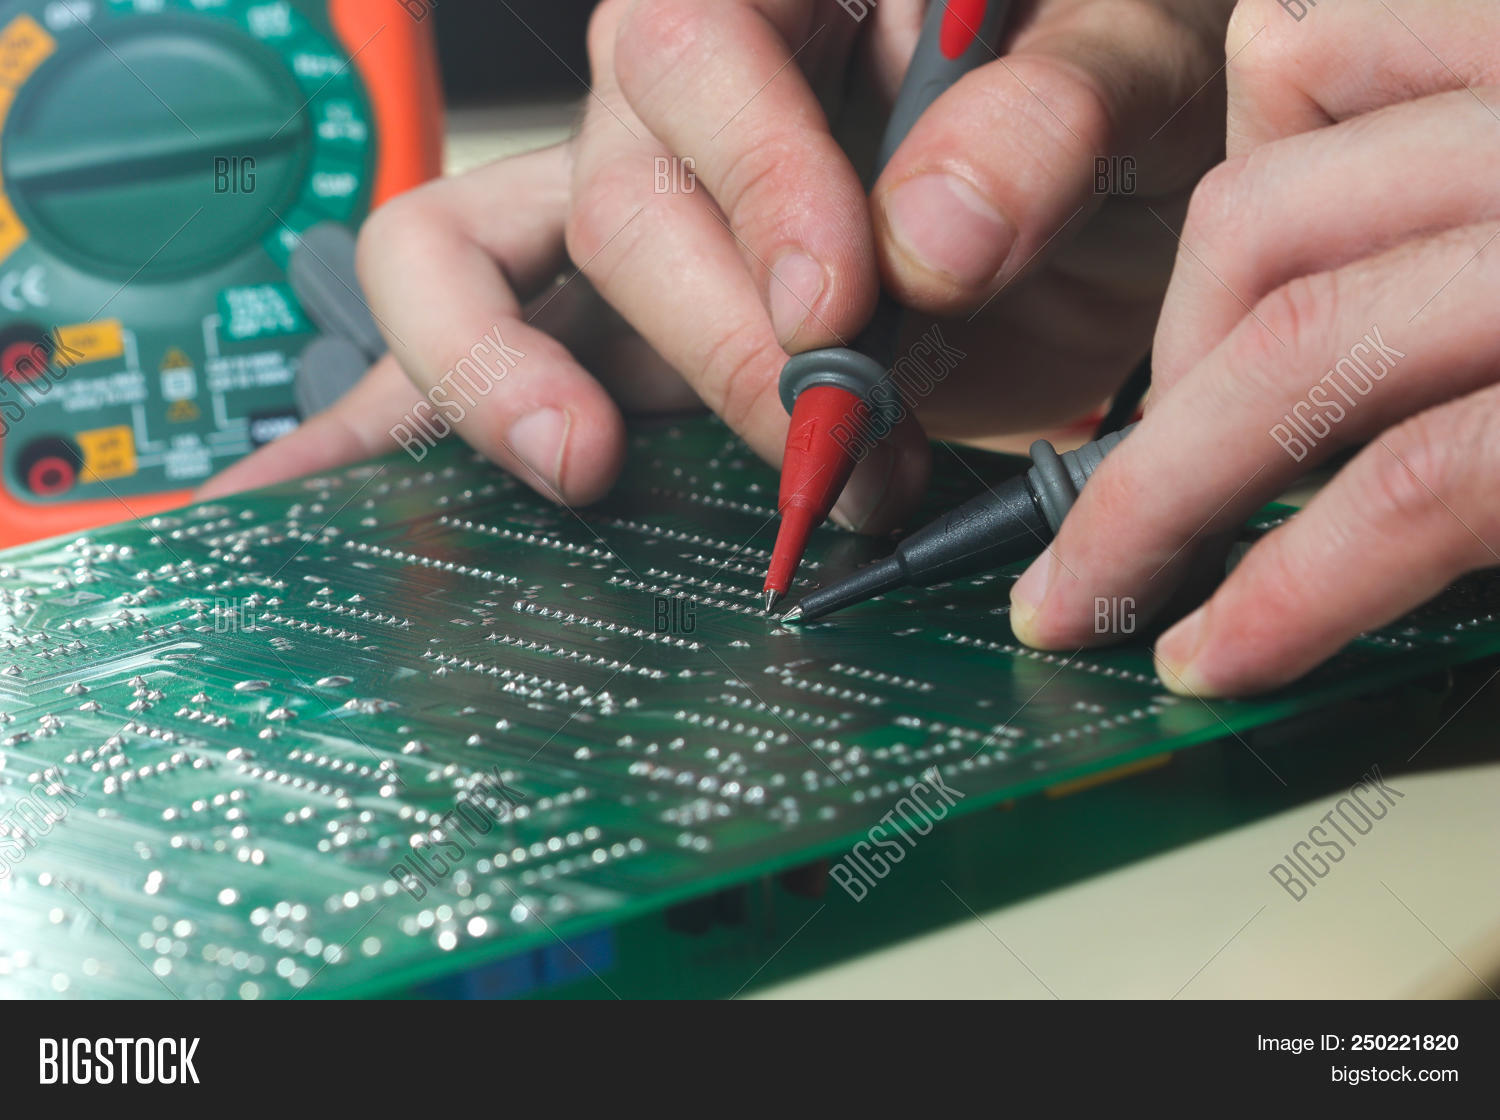 Engineer Testing Image Photo Free Trial Bigstock Cutting Circuit Board Is With Instrument